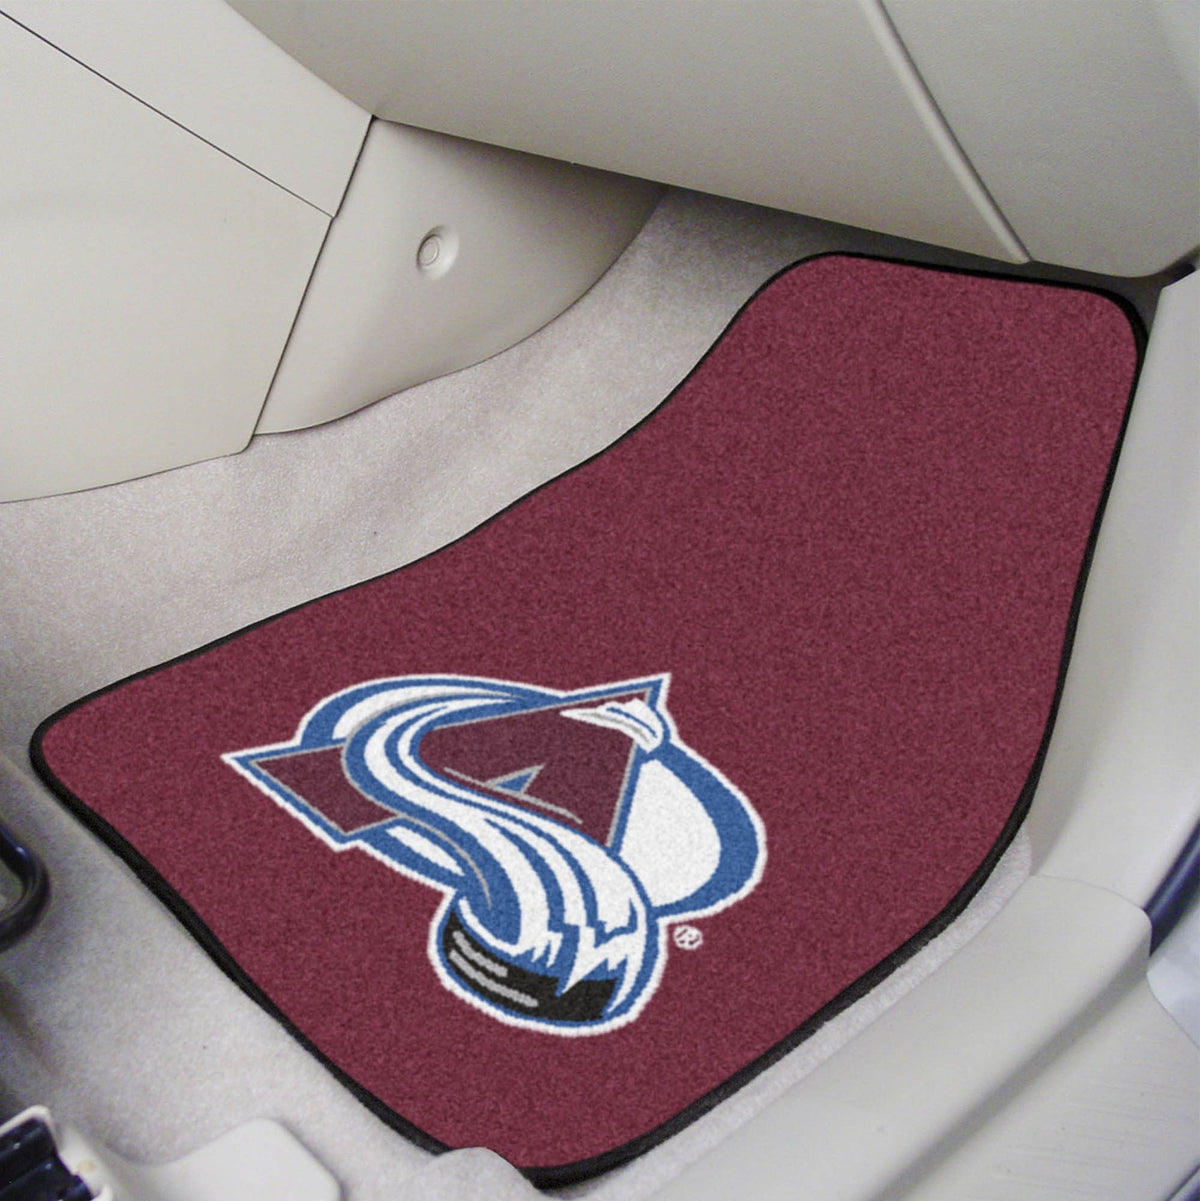 NHL - Carpet Car Mat, 2-Piece Set NHL Mats, Front Car Mats, 2-pc Carpet Car Mat Set, NHL, Auto Fan Mats Colorado Avalanche